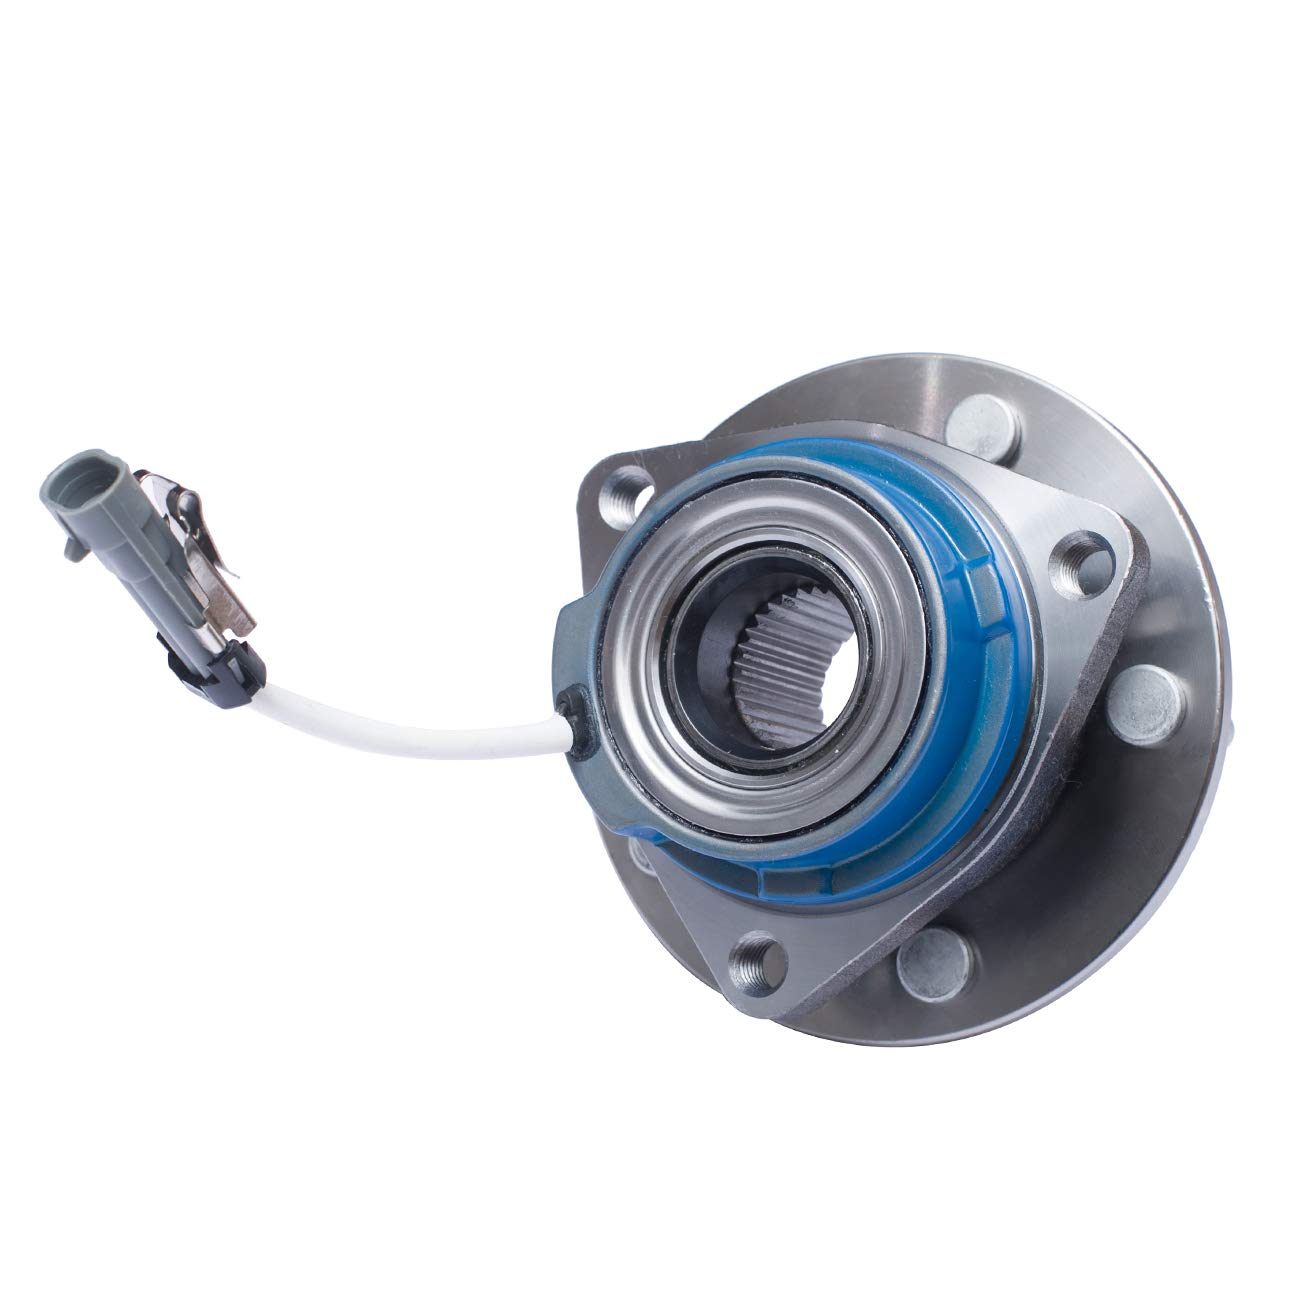 TUCAREST 512223 Rear Wheel Bearing and Hub Assembly Compatible With 2003-2007 Cadillac CTS Base and Platinum Models 5 Stud Hub W//ABS Base Models 2005-2011 STS